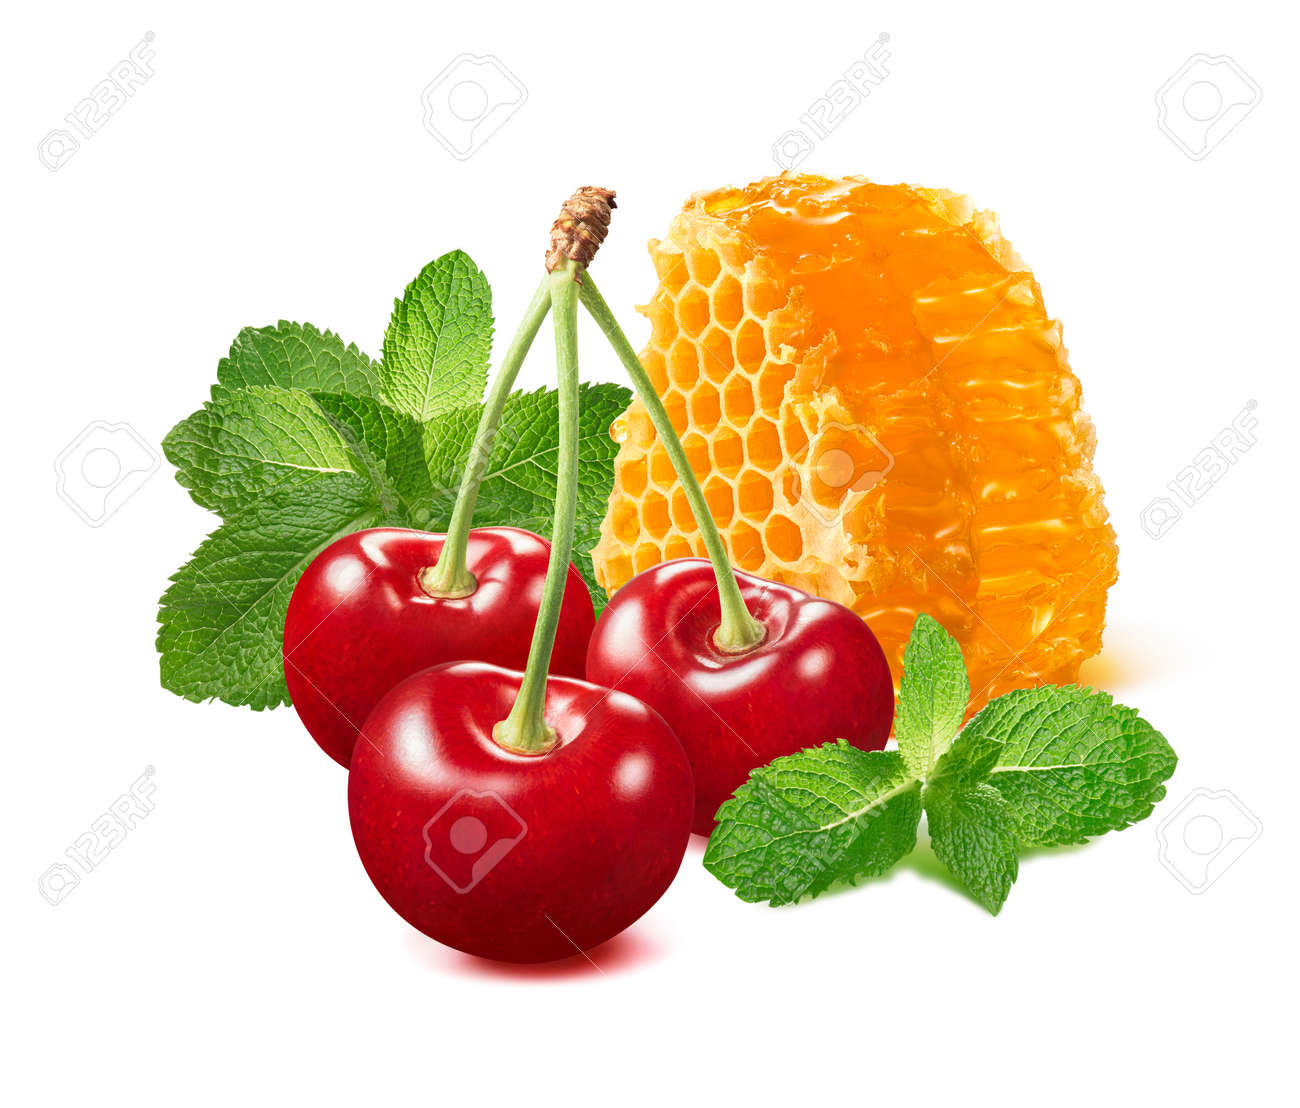 Sweet red cherries, mint and honey. Berries and honeycomb isolated on white background. Package design element with clipping path - 171479168